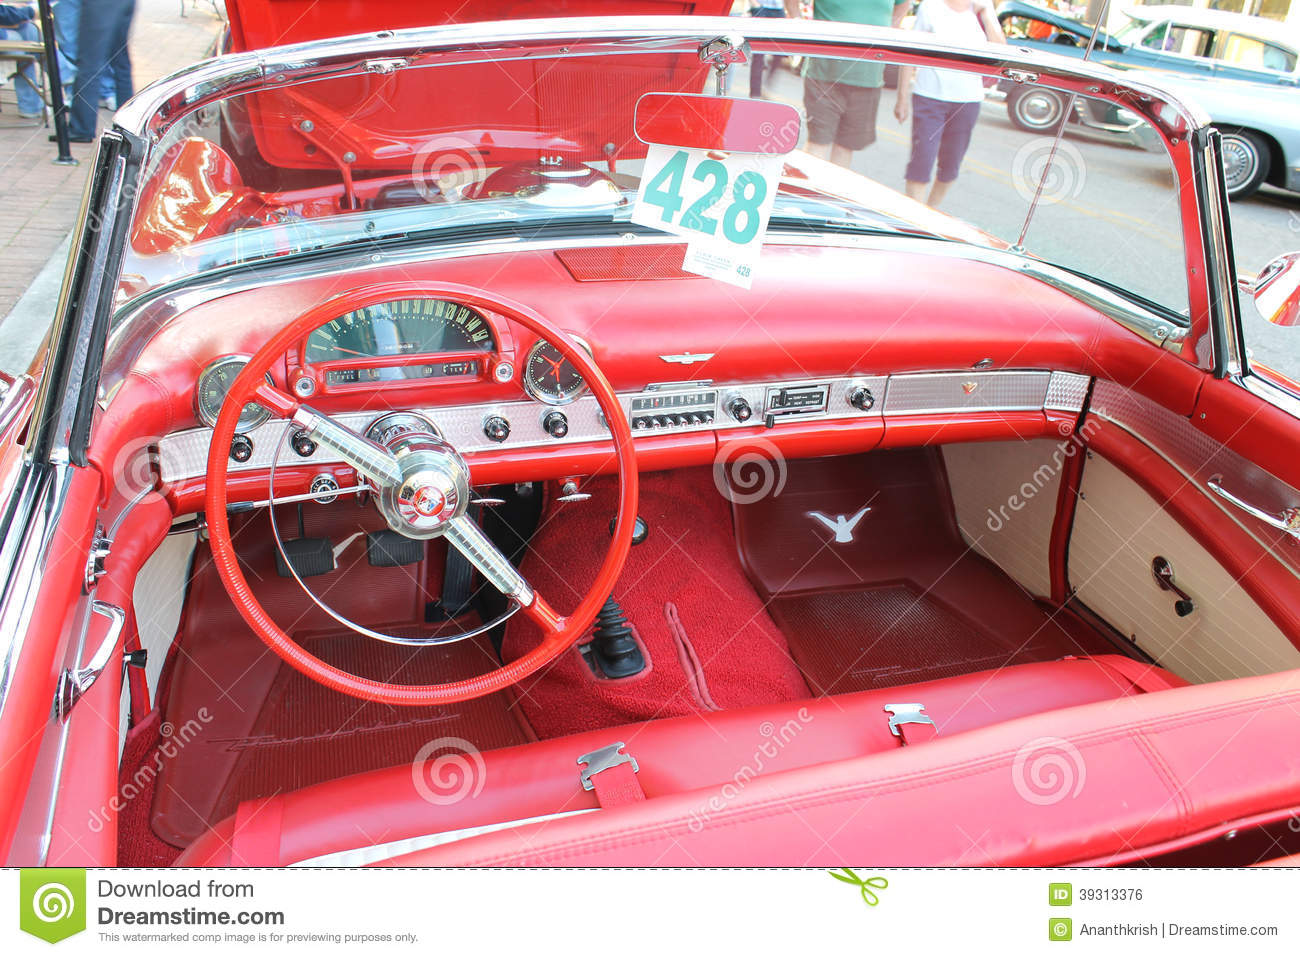 the old ford thunderbird car at the car show editorial photo image 39313376. Black Bedroom Furniture Sets. Home Design Ideas